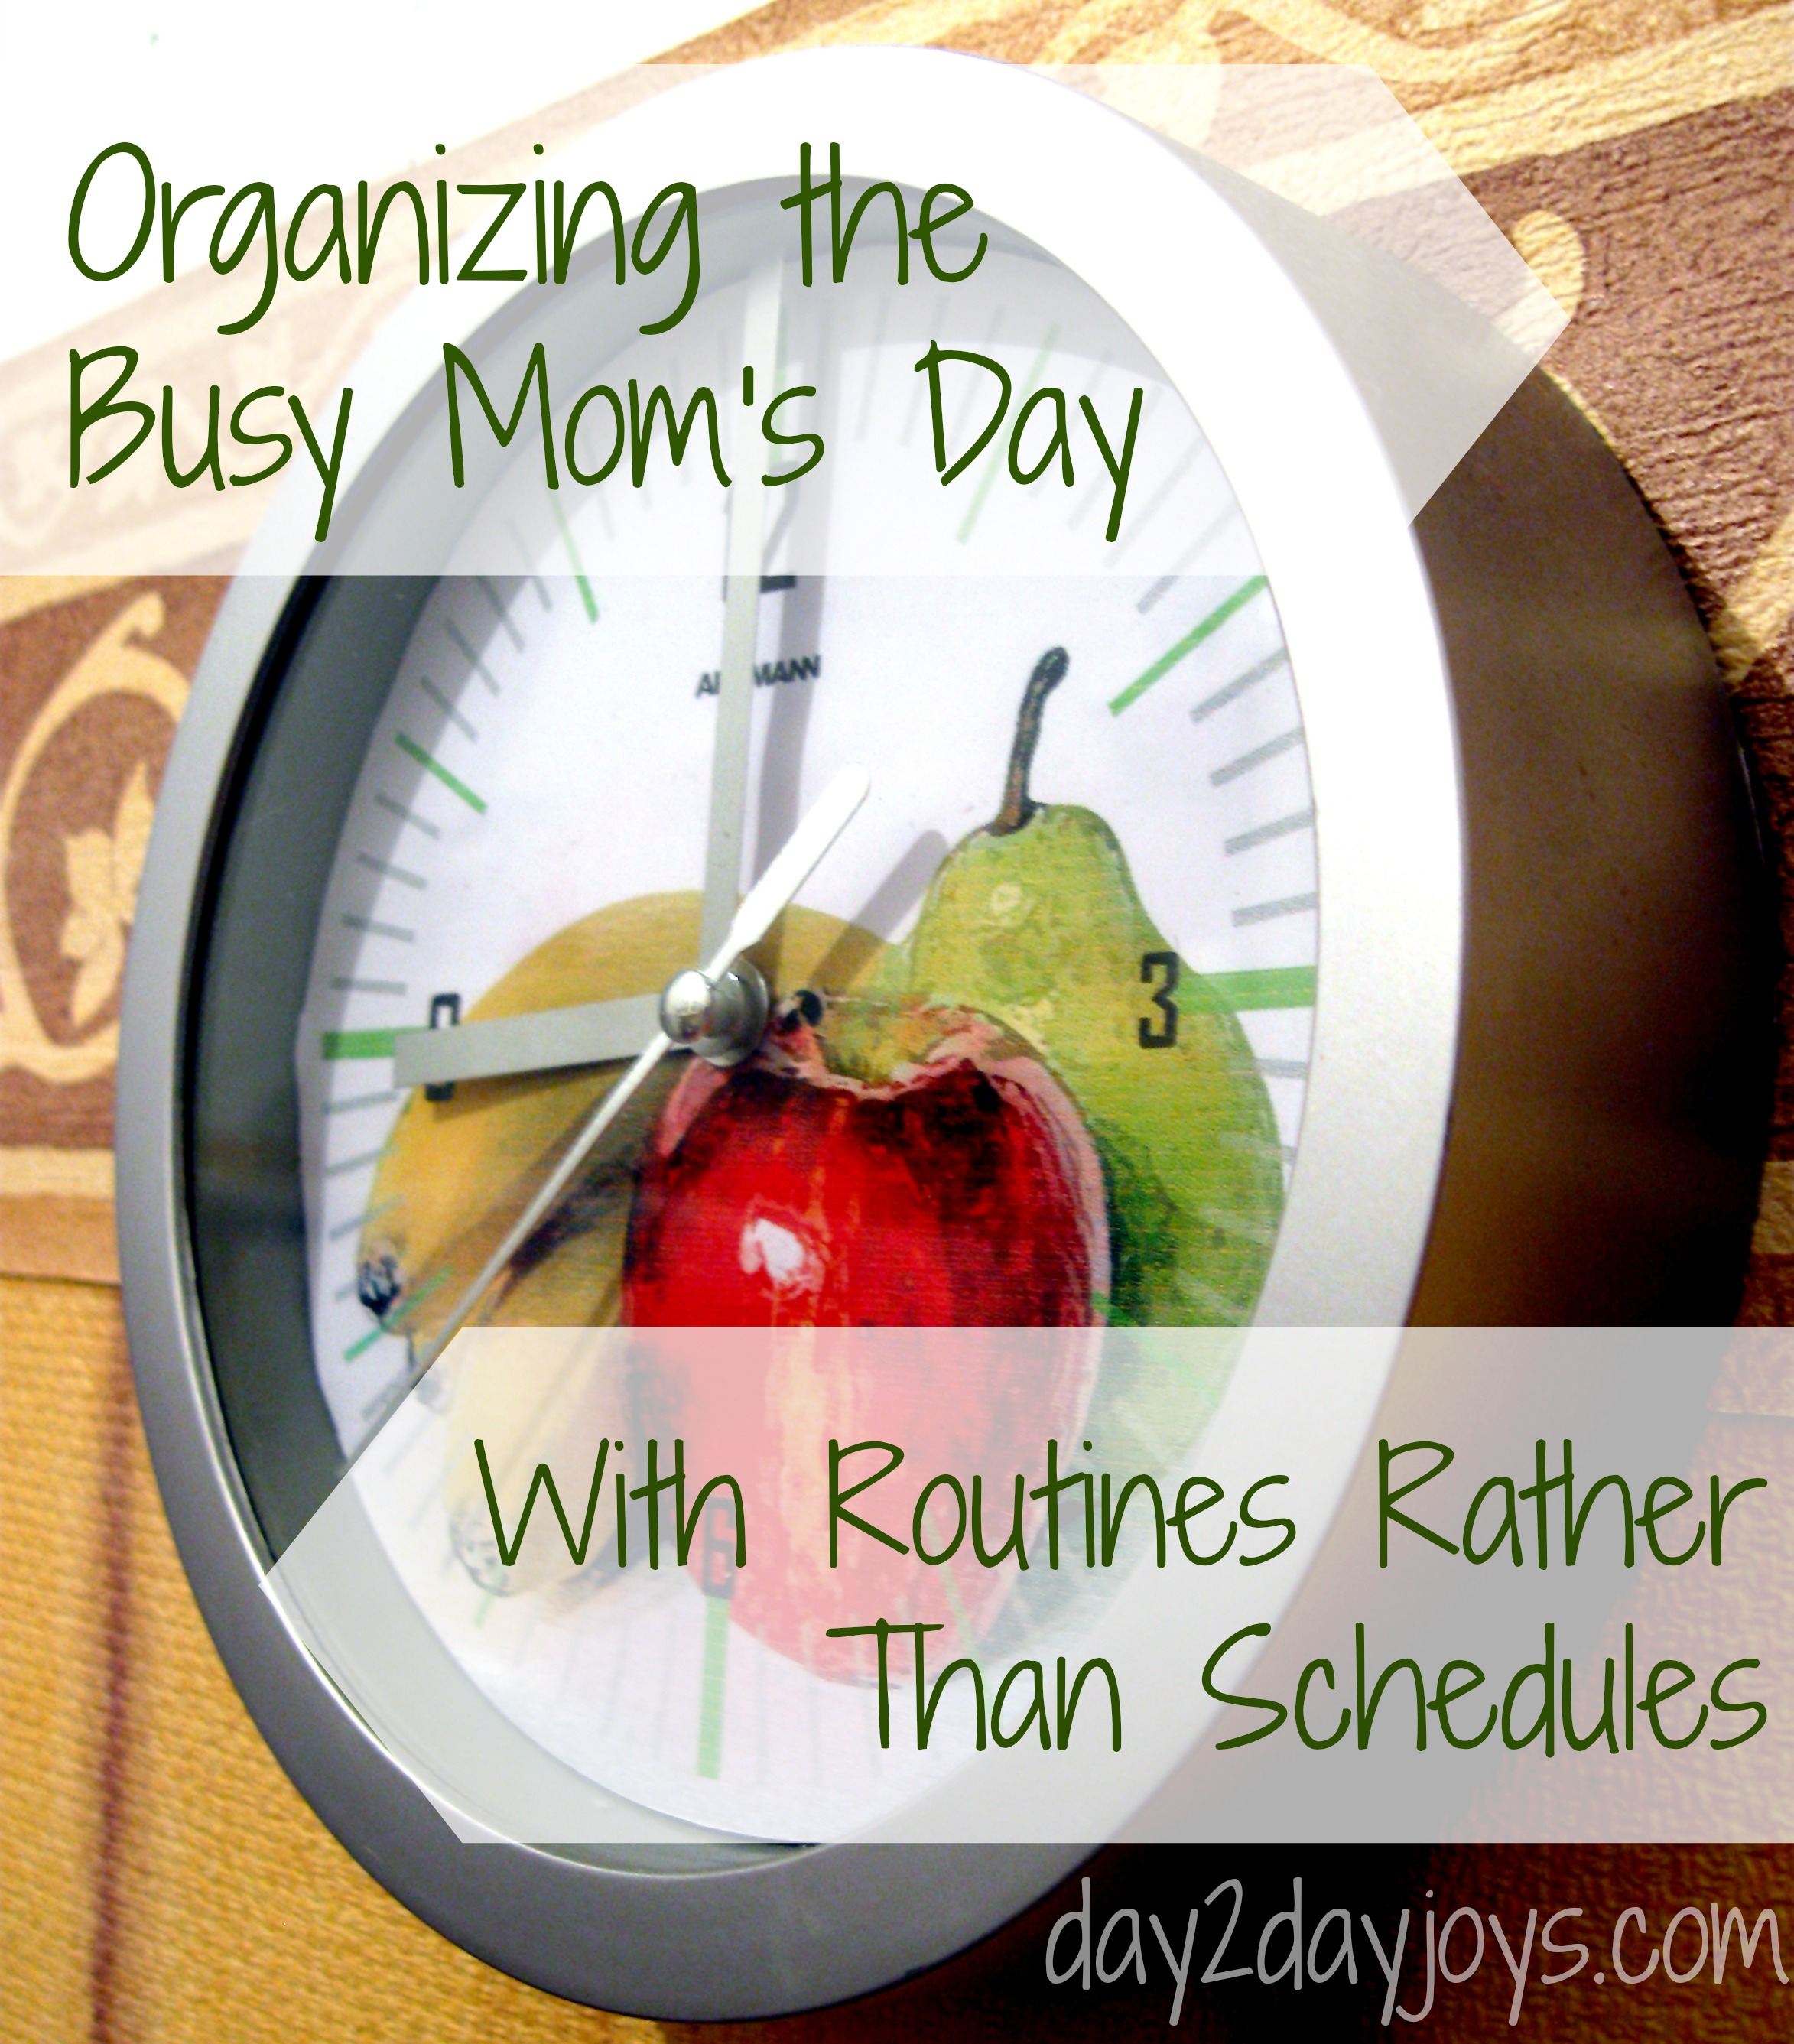 Organizing the busy mom's day with routines rather than schedules